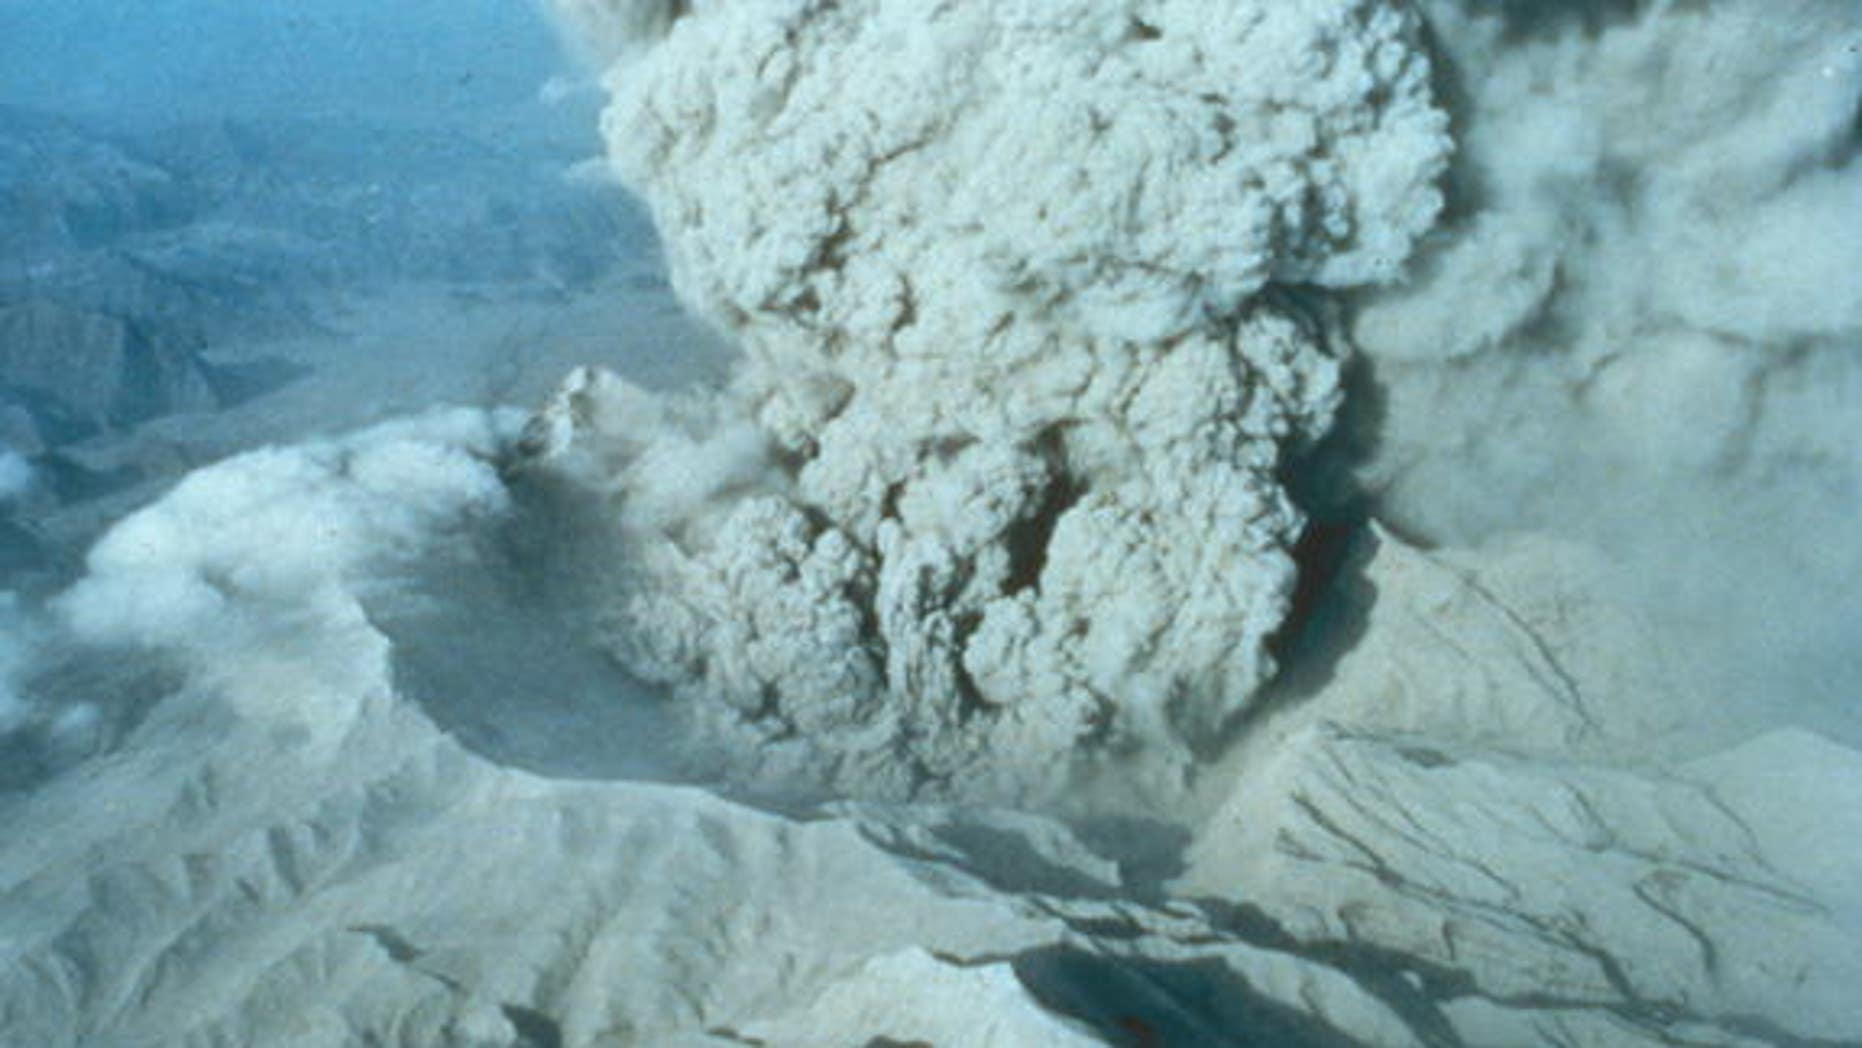 Mount Pinatubo's 1991 eruption